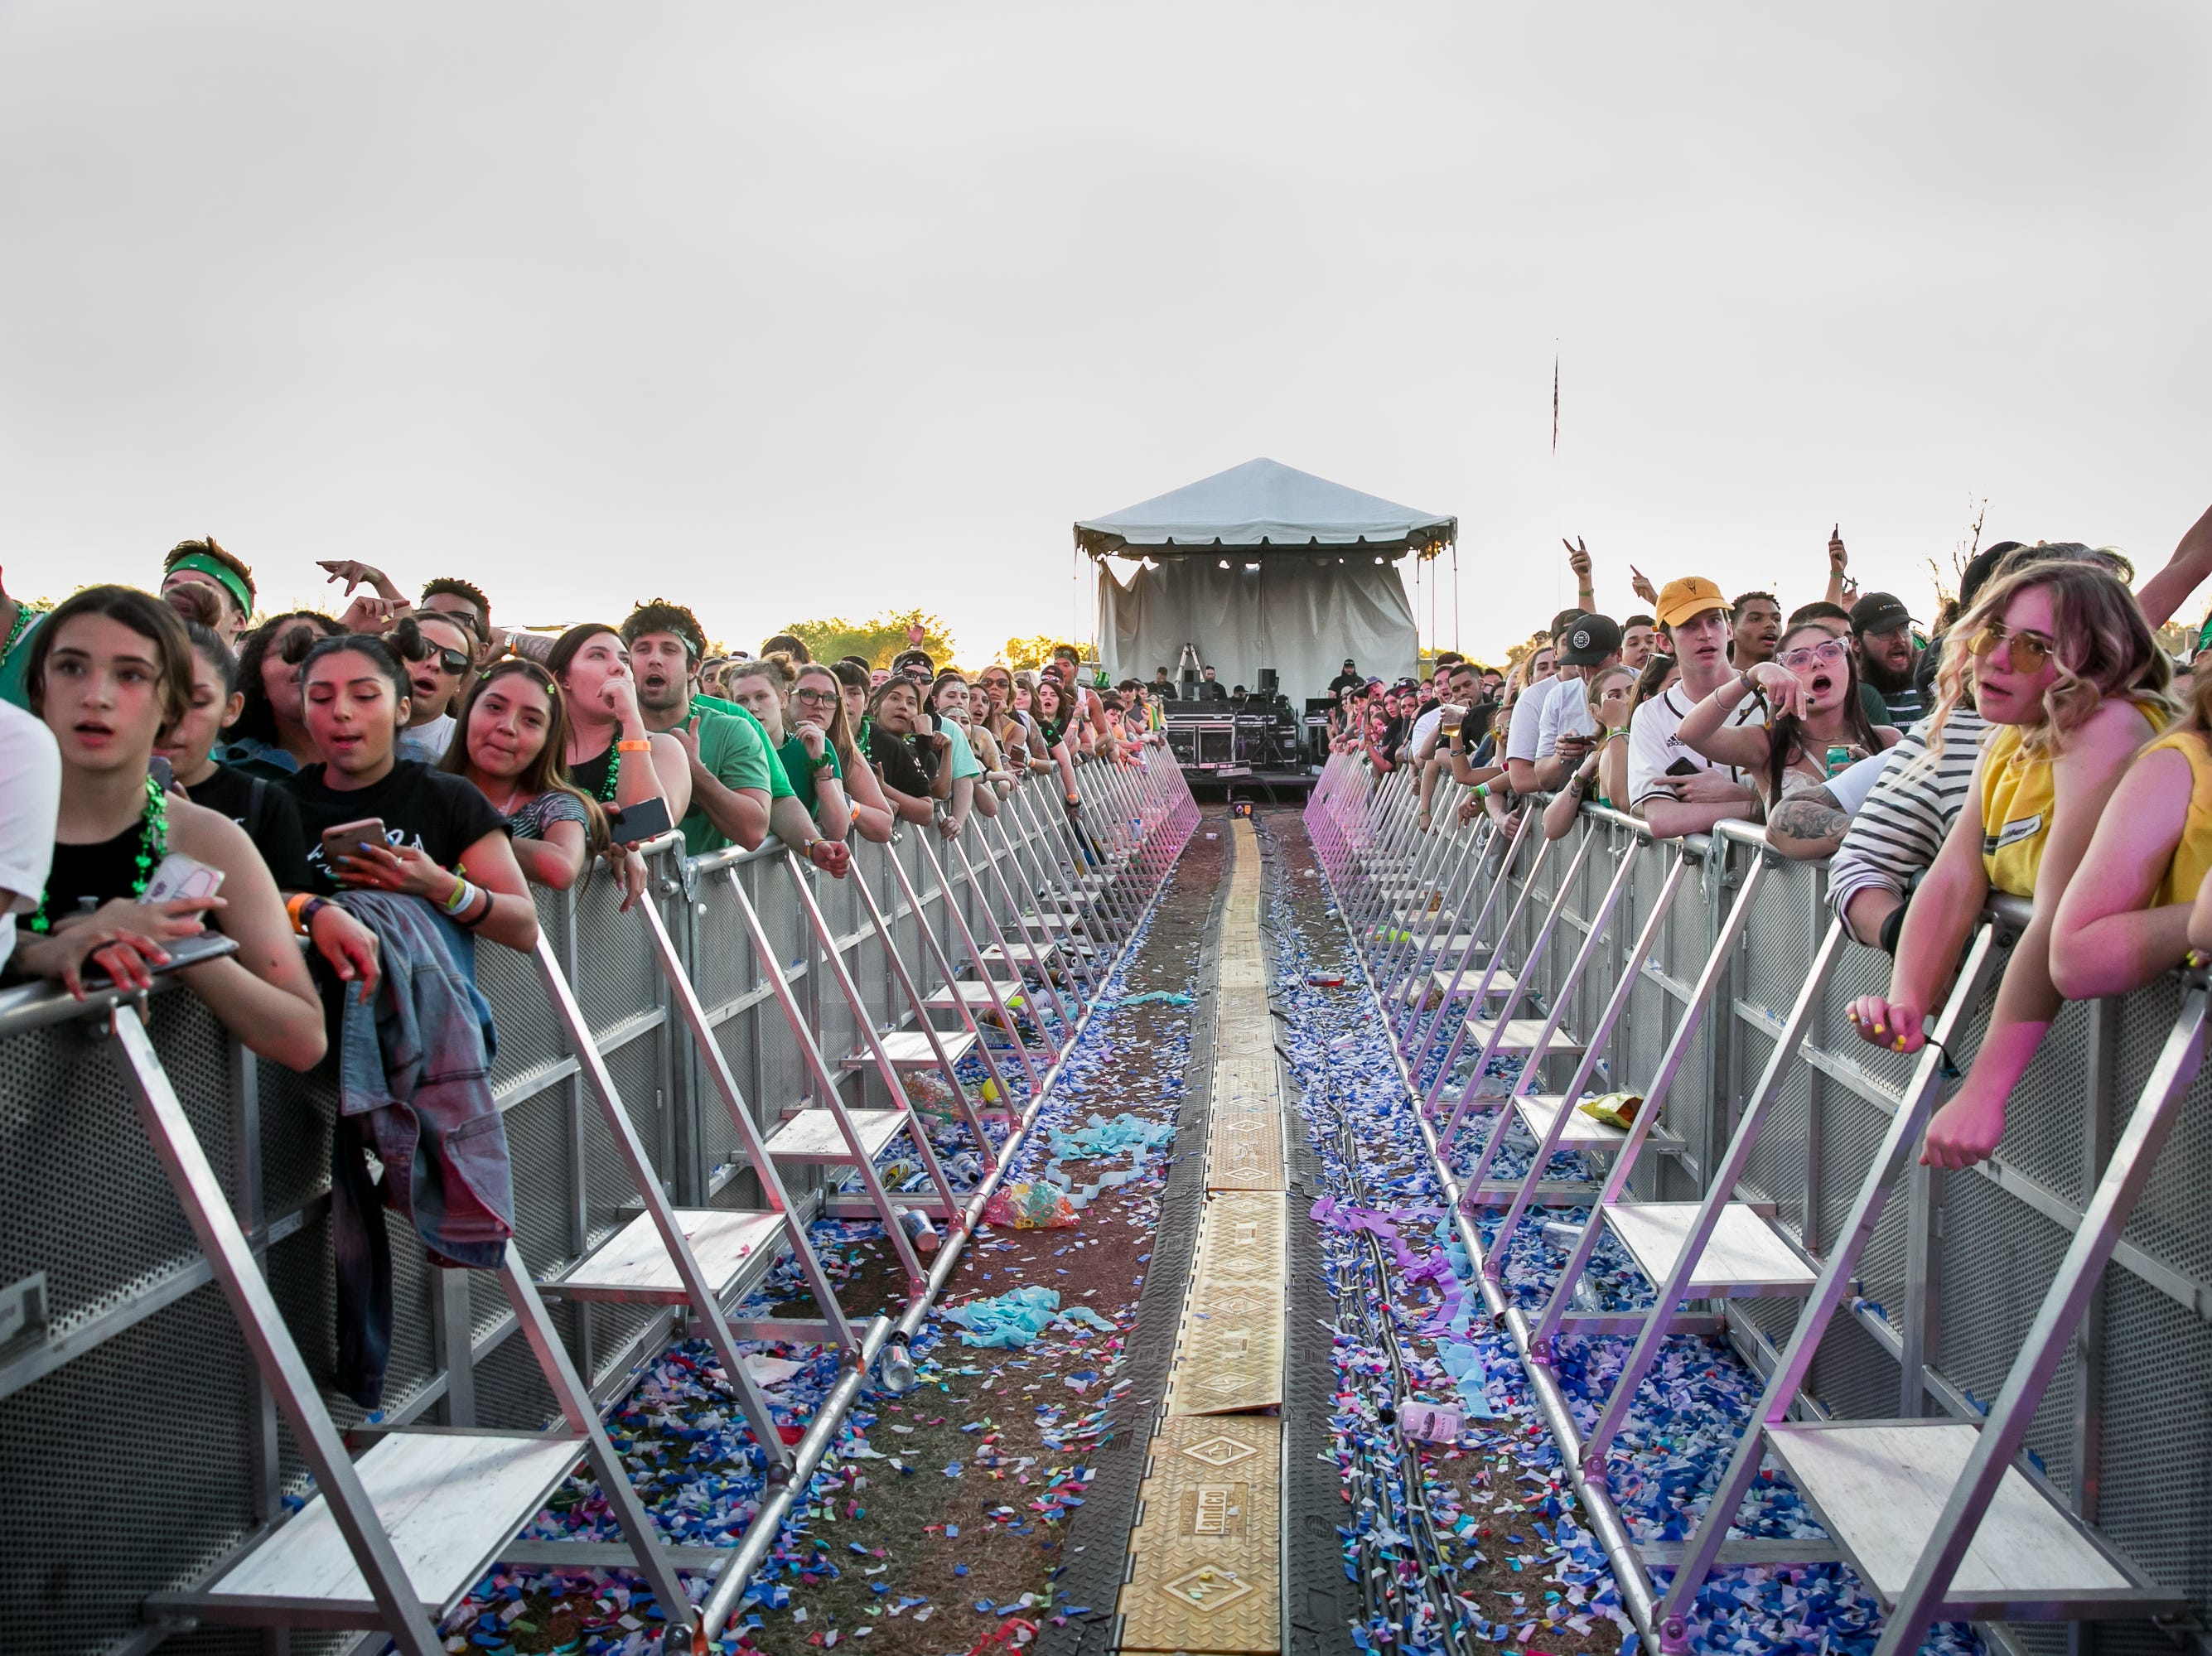 The center barricade was a cool addition during Pot of Gold Music Festival on Sunday, March 17, 2019.